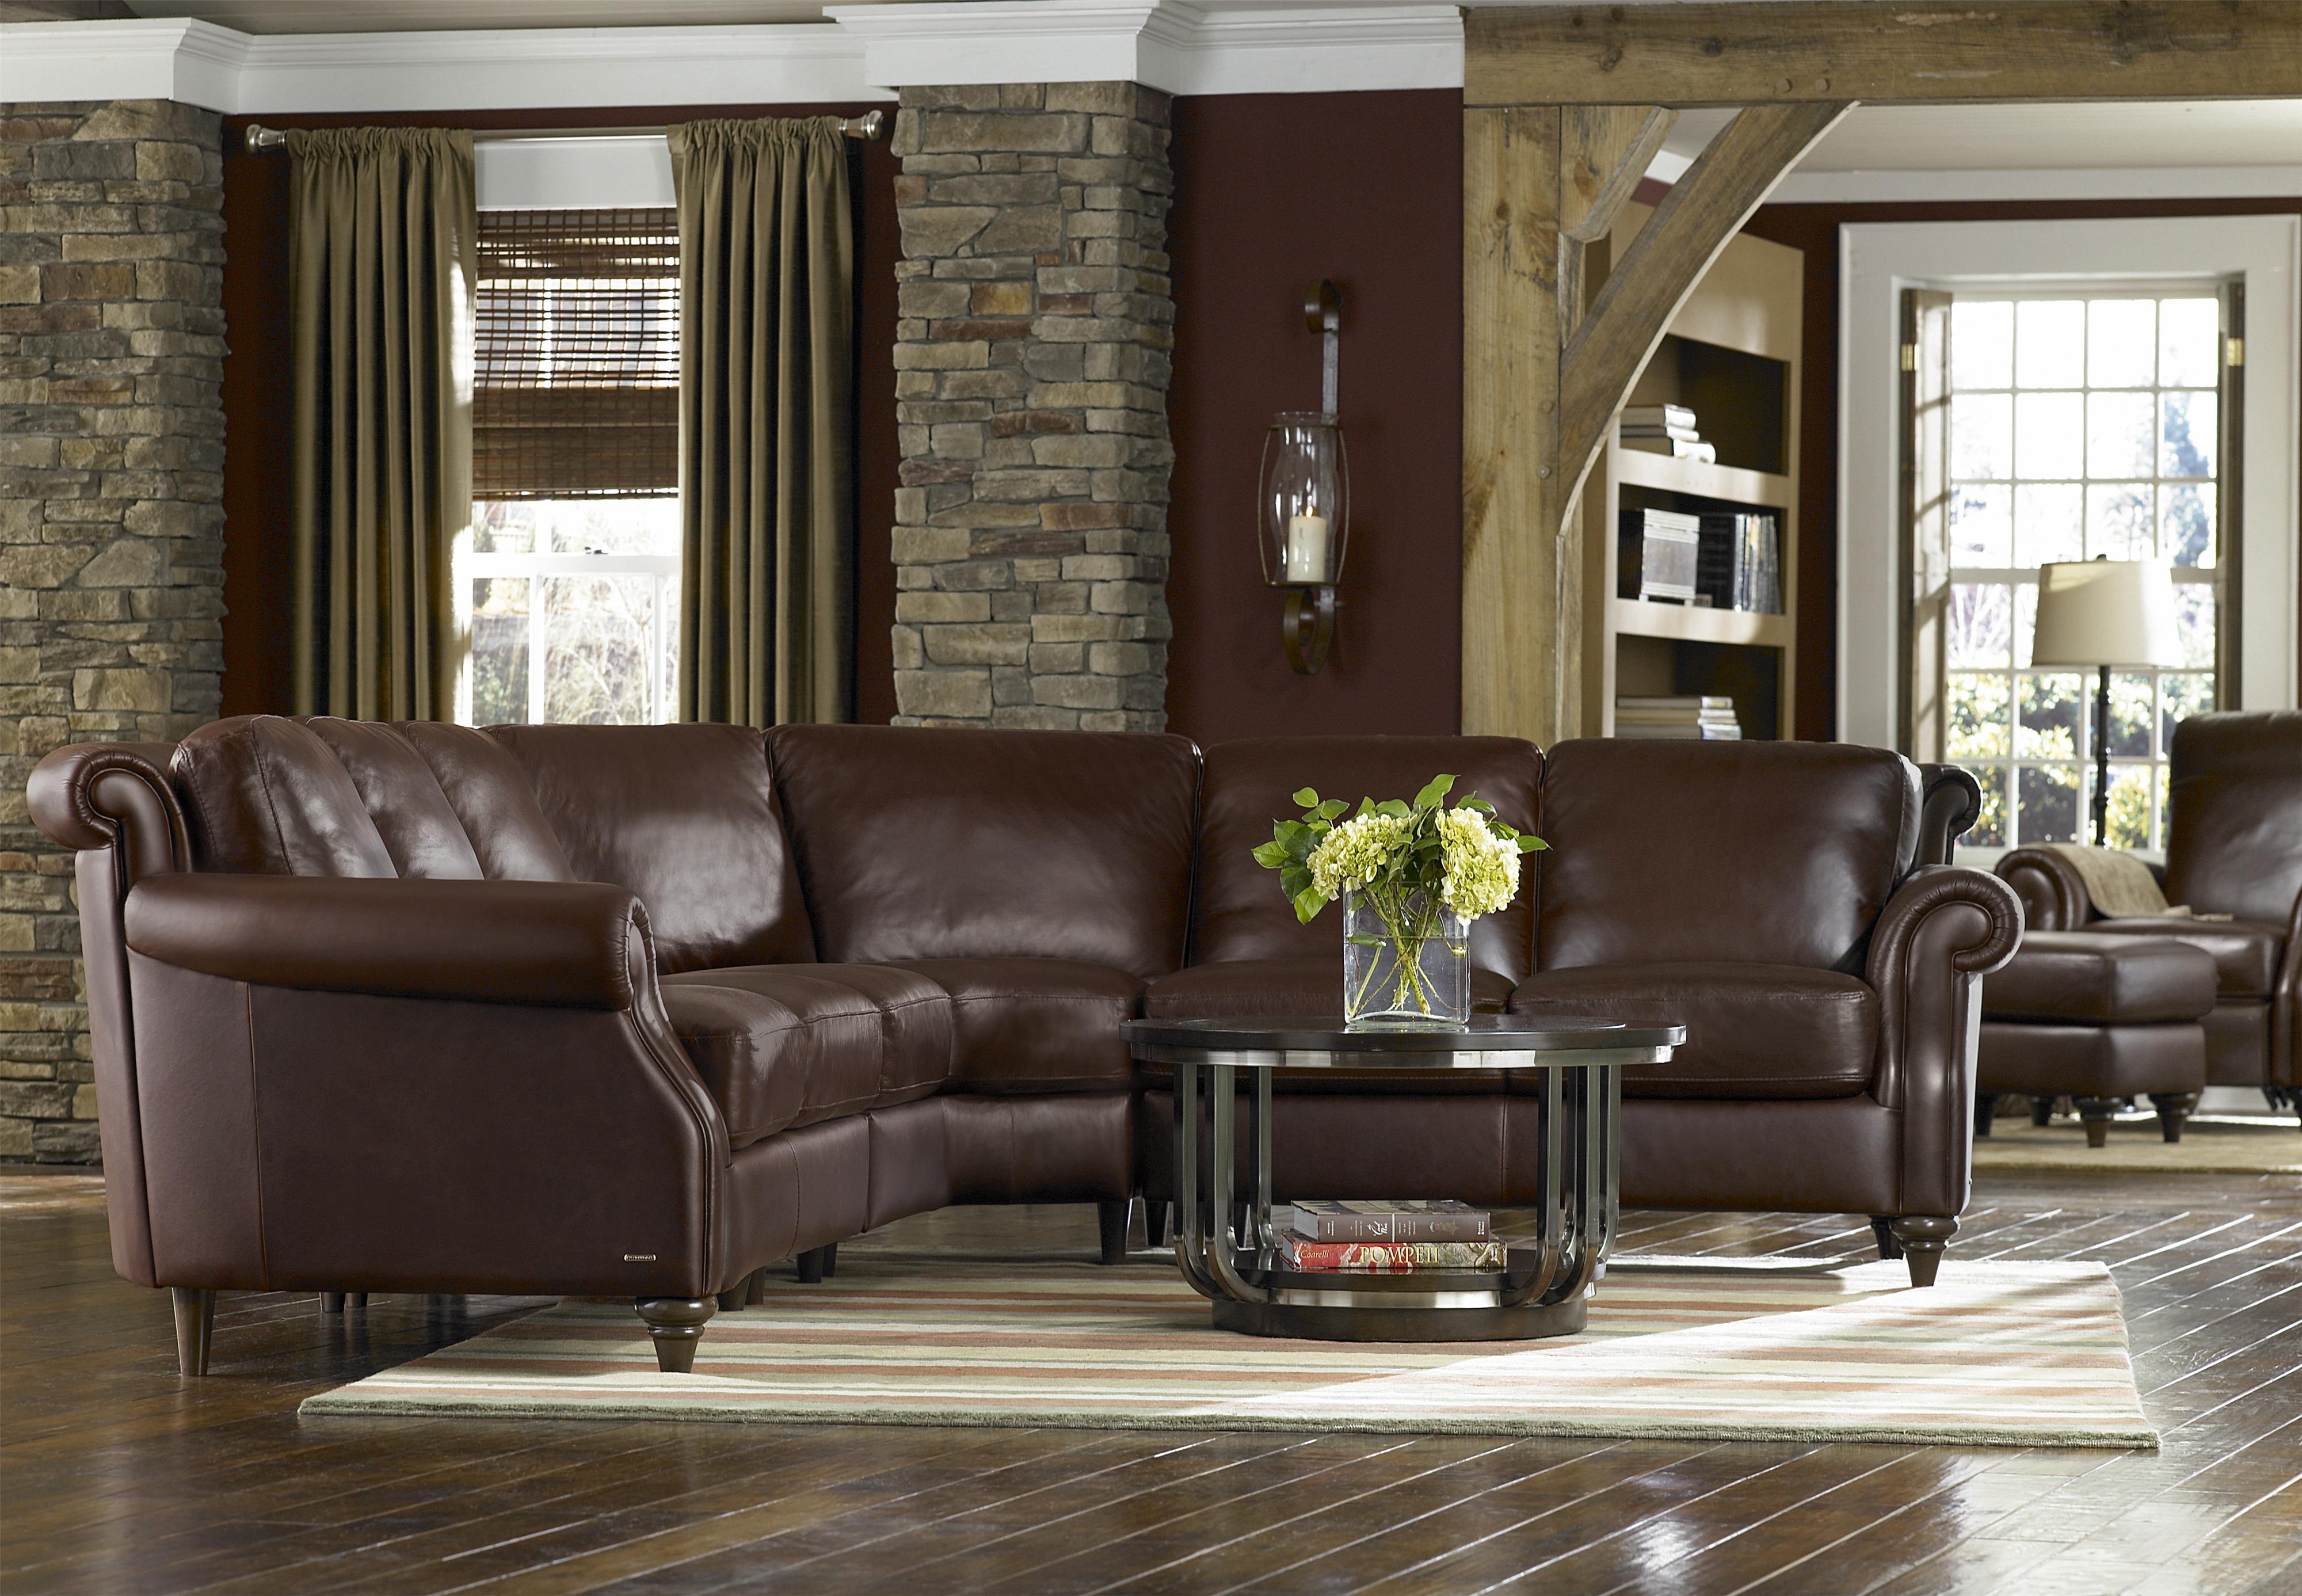 Natuzzi Living Room Sets. Latest Living Room Designs In India. Shabby Chic Decorating Ideas Living Room. Living Room Wall Decor Ideas With Mirrors. Small Living Room Remodel Pictures. Interior Design Ideas For Kitchen And Living Room. Furniture Set Up For Small Living Room. Best Color For Living Room. Gray Painted Living Rooms Examples